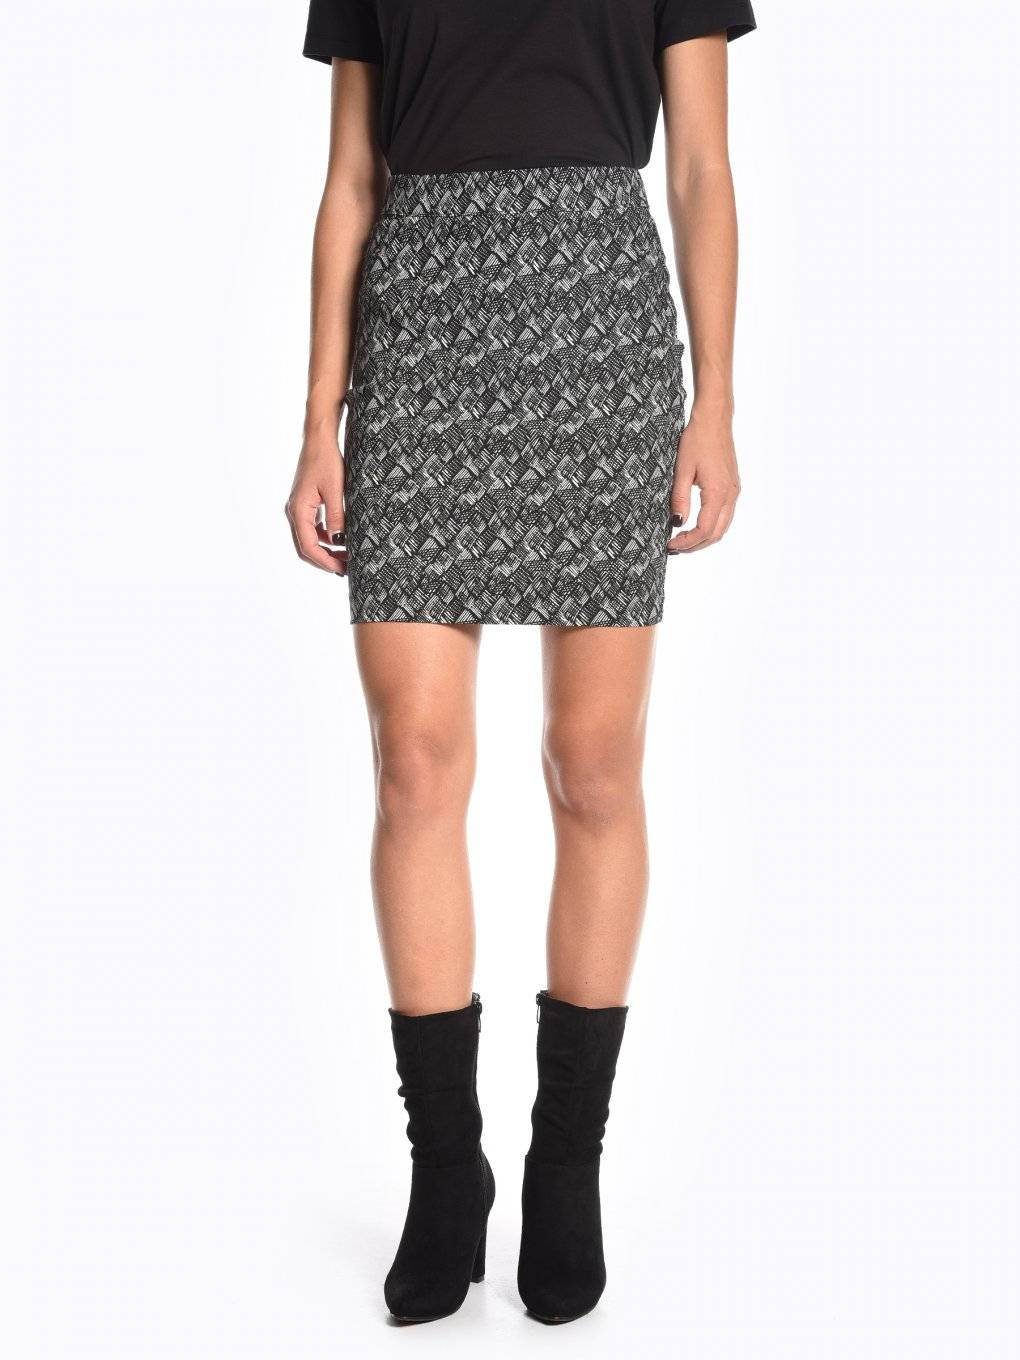 Bodycon printed skirt